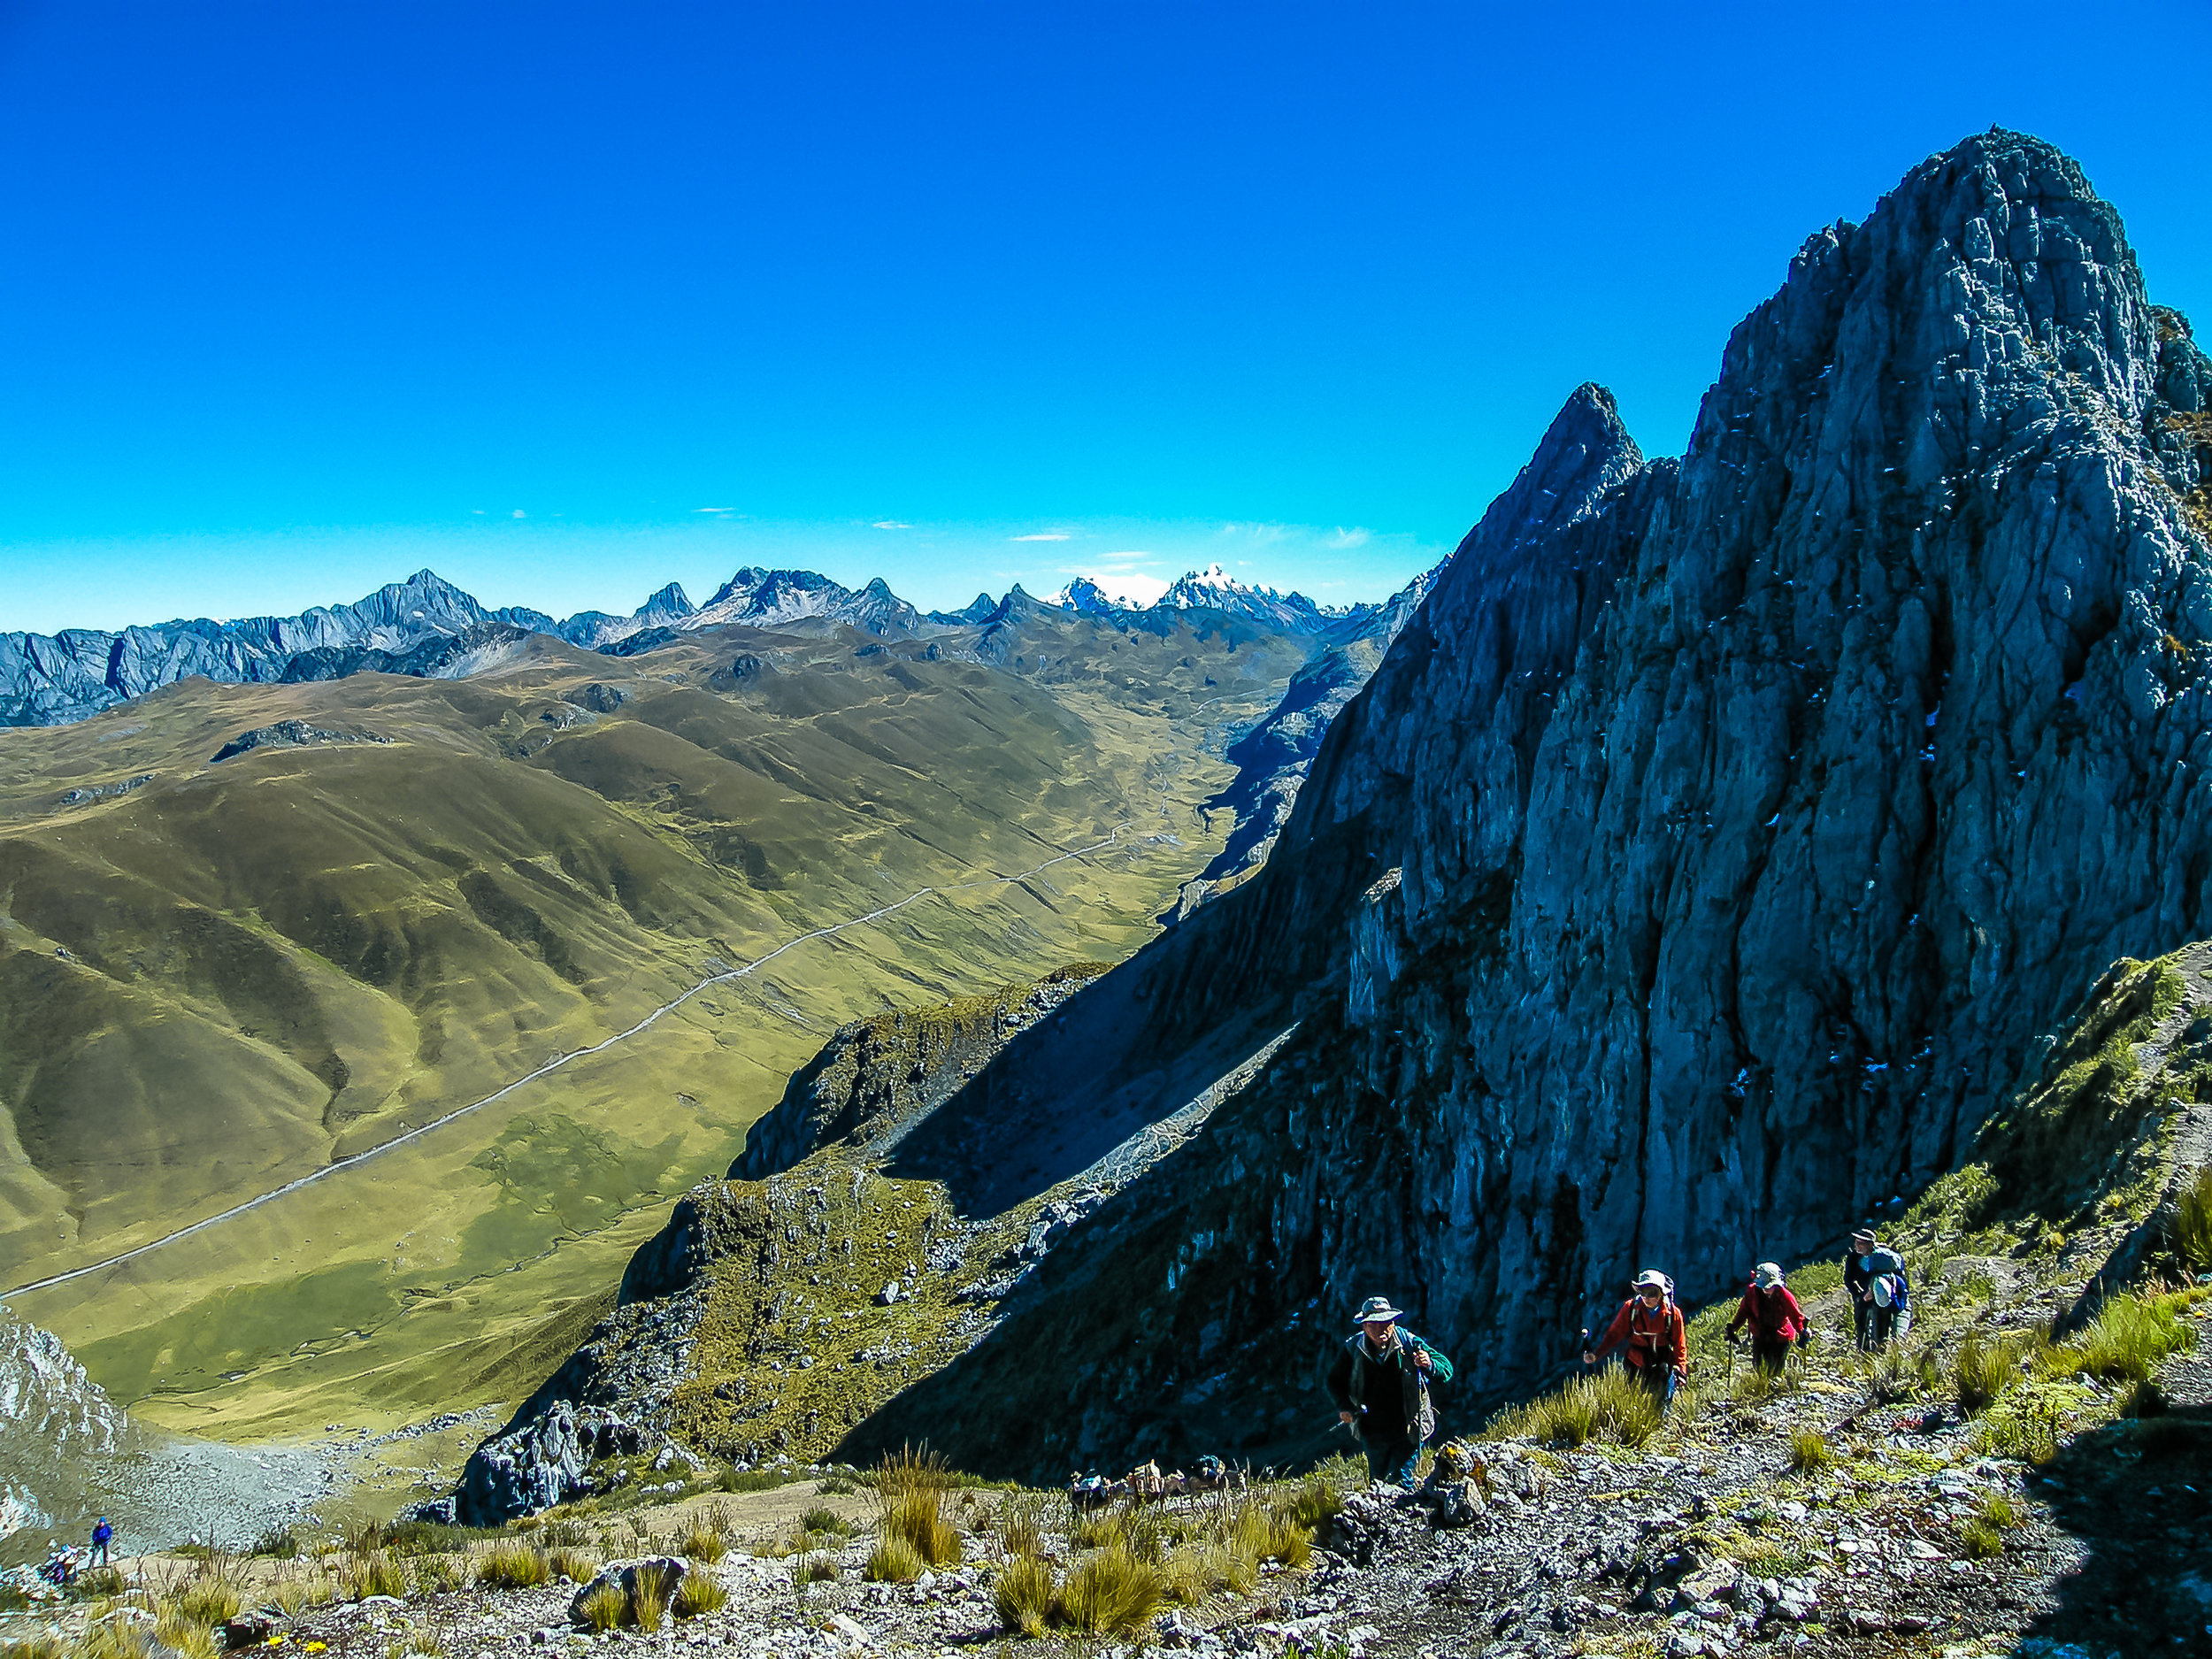 Travel to South America with Native Paths   PLAN YOUR NEXT ADVENTURE TO PERU, BOLIVIA, CHILE AND ARGENTINA   Design Your Trip